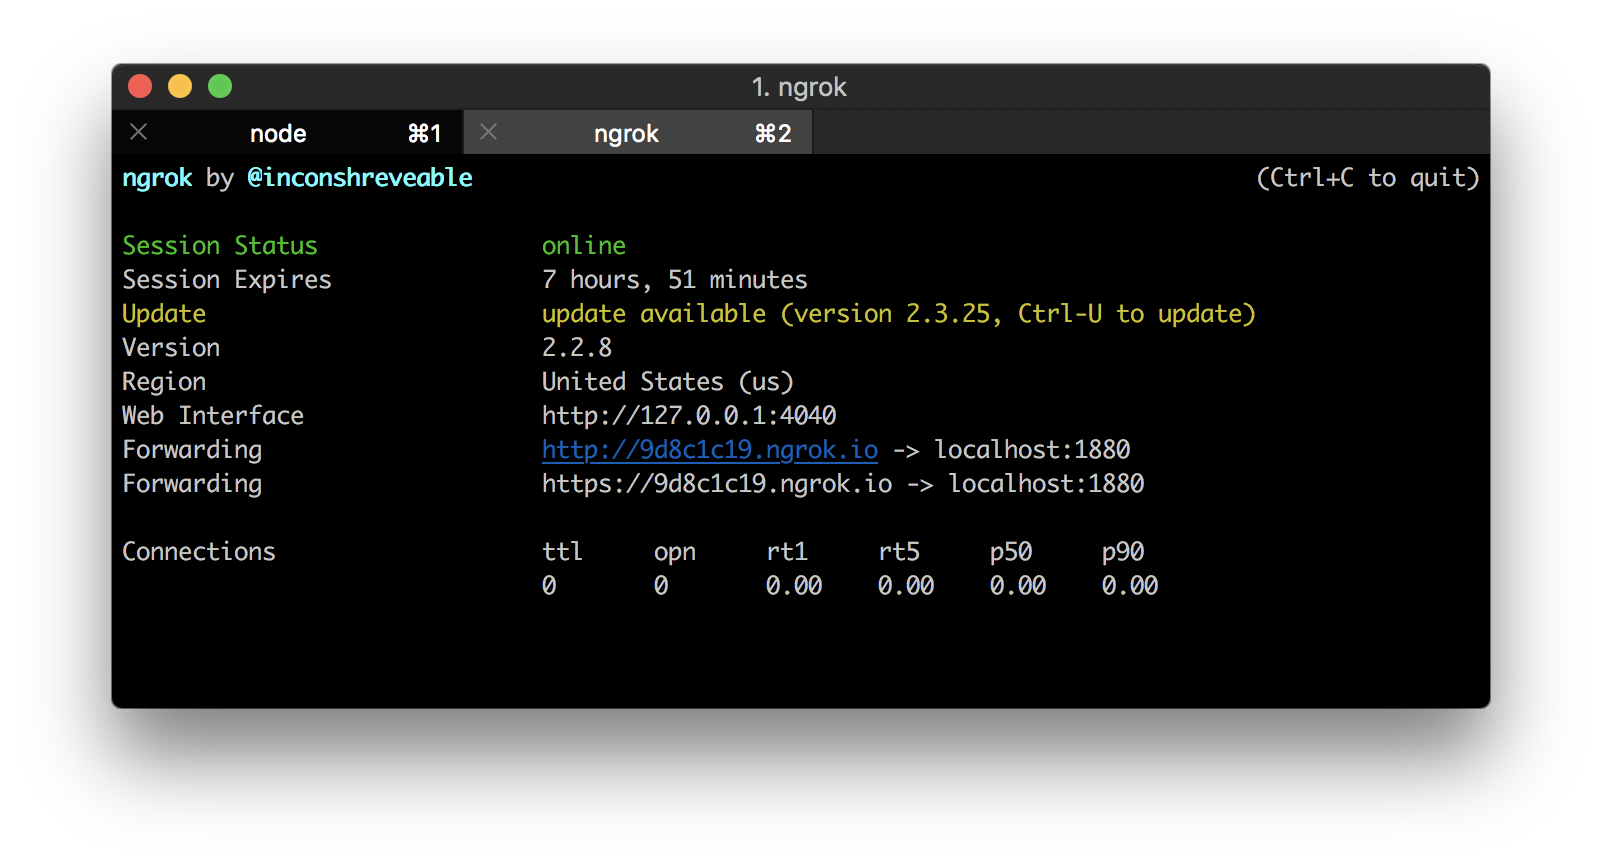 Starting an ngrok tunnel in a terminal window